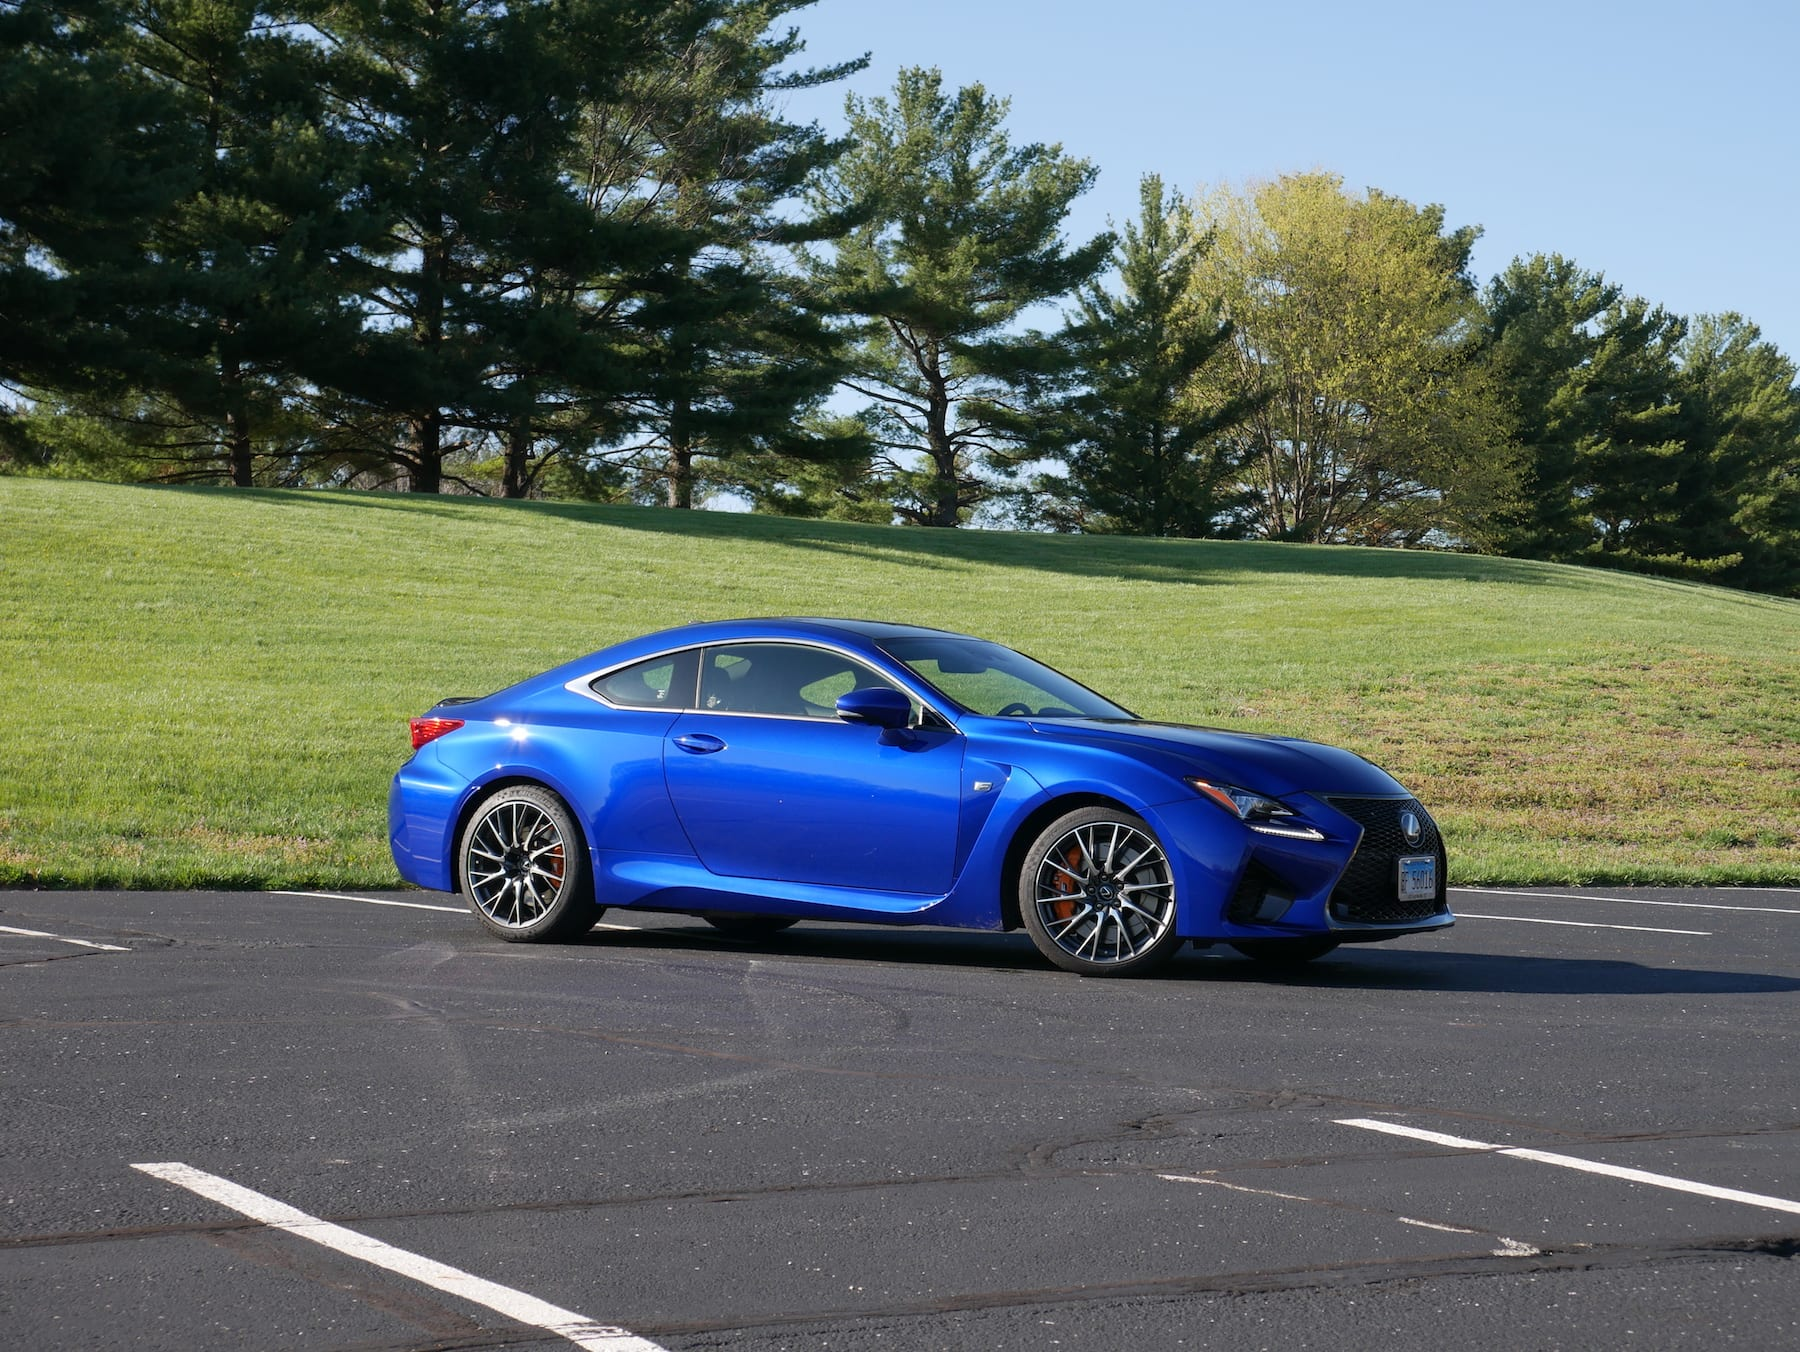 2019 Lexus RC F front three quarter view